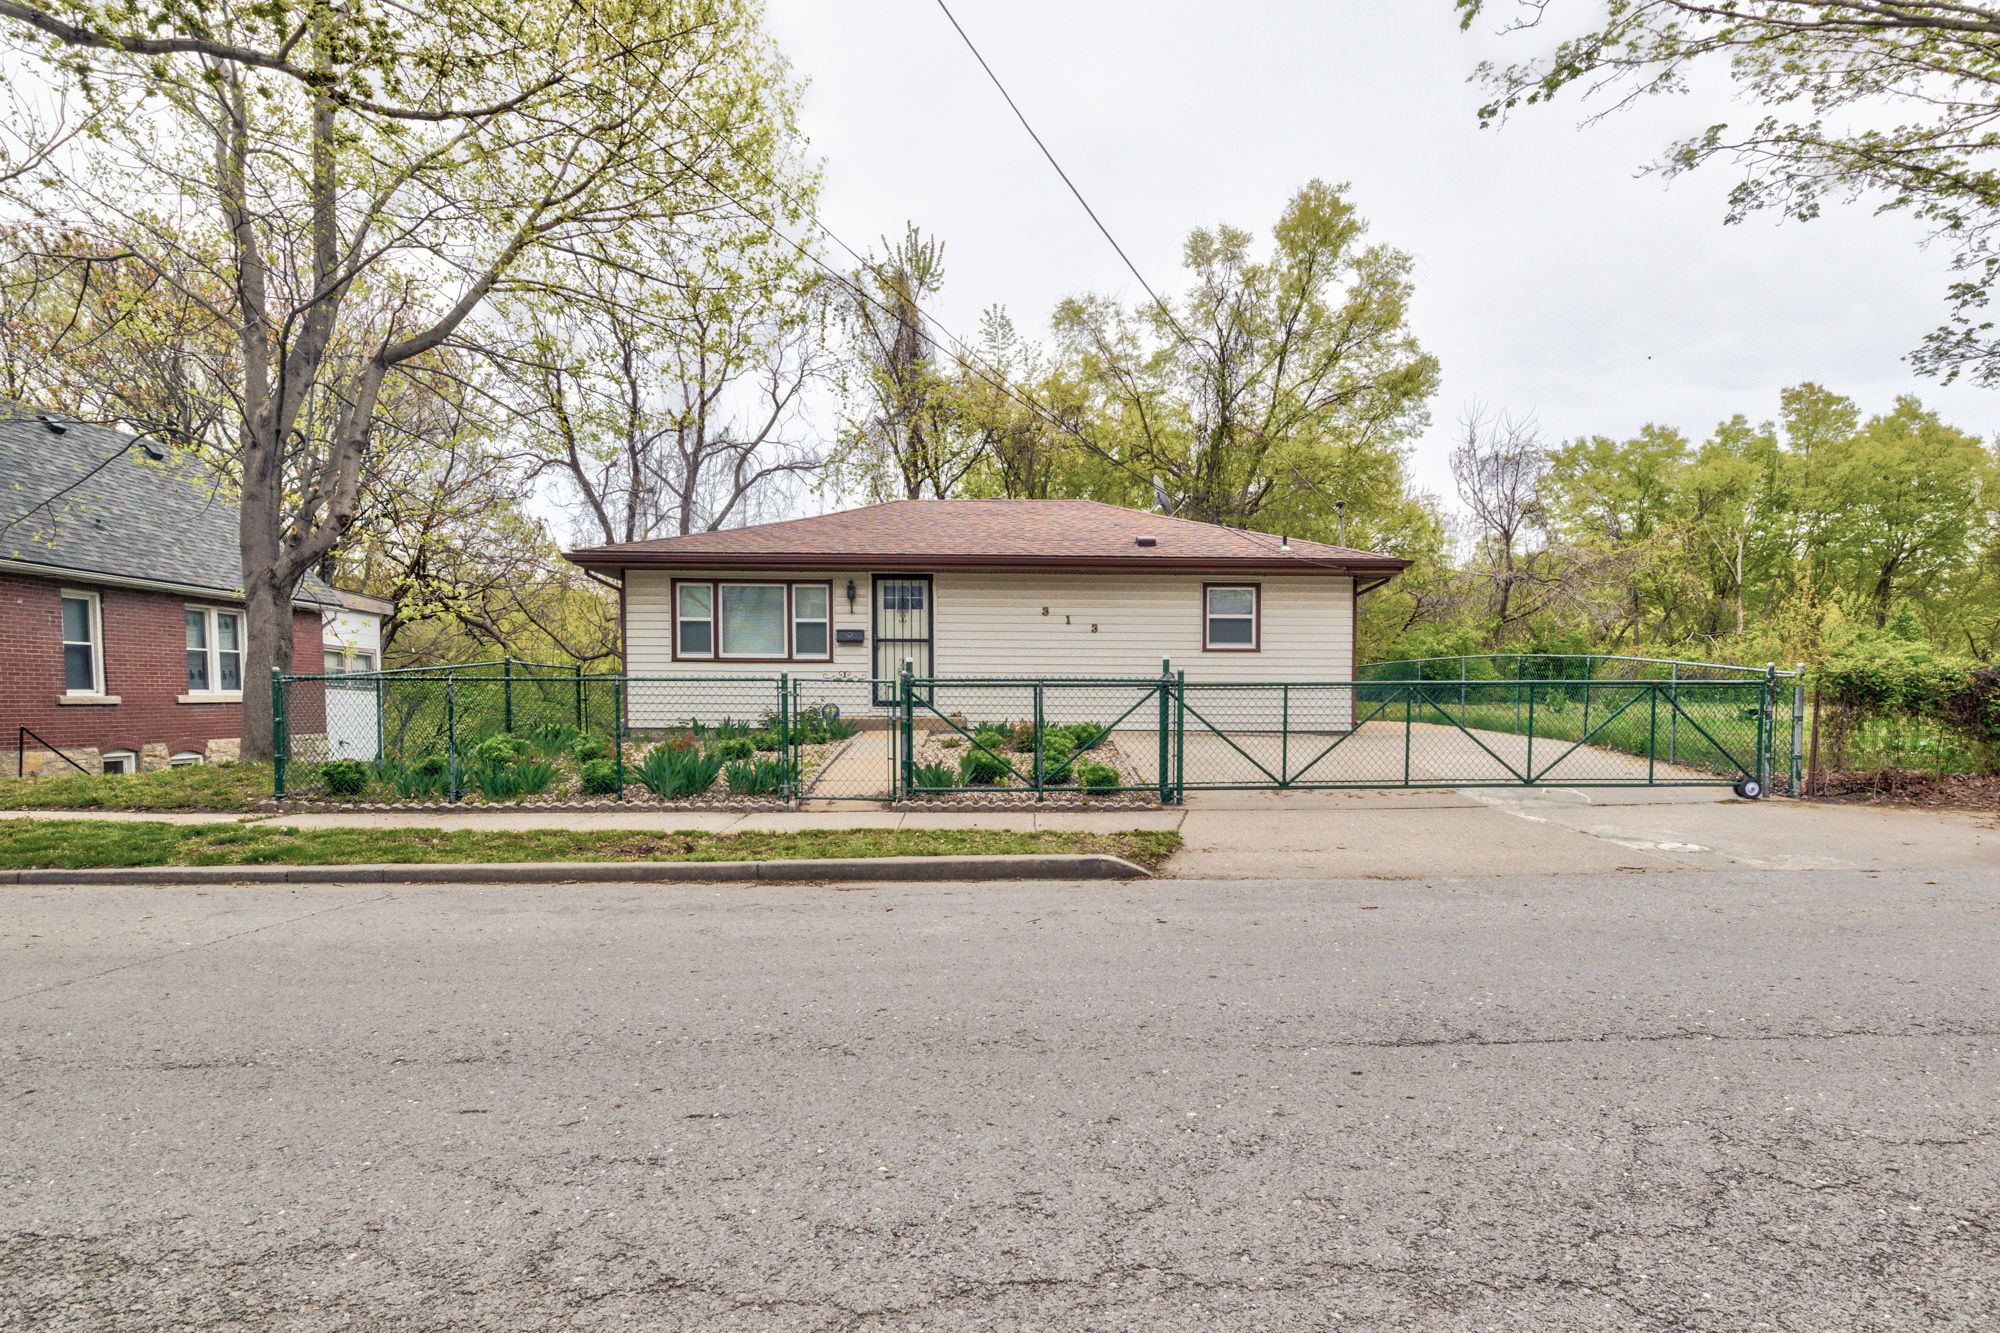 313 Montgall Ave, KCMO, MO 64124, US